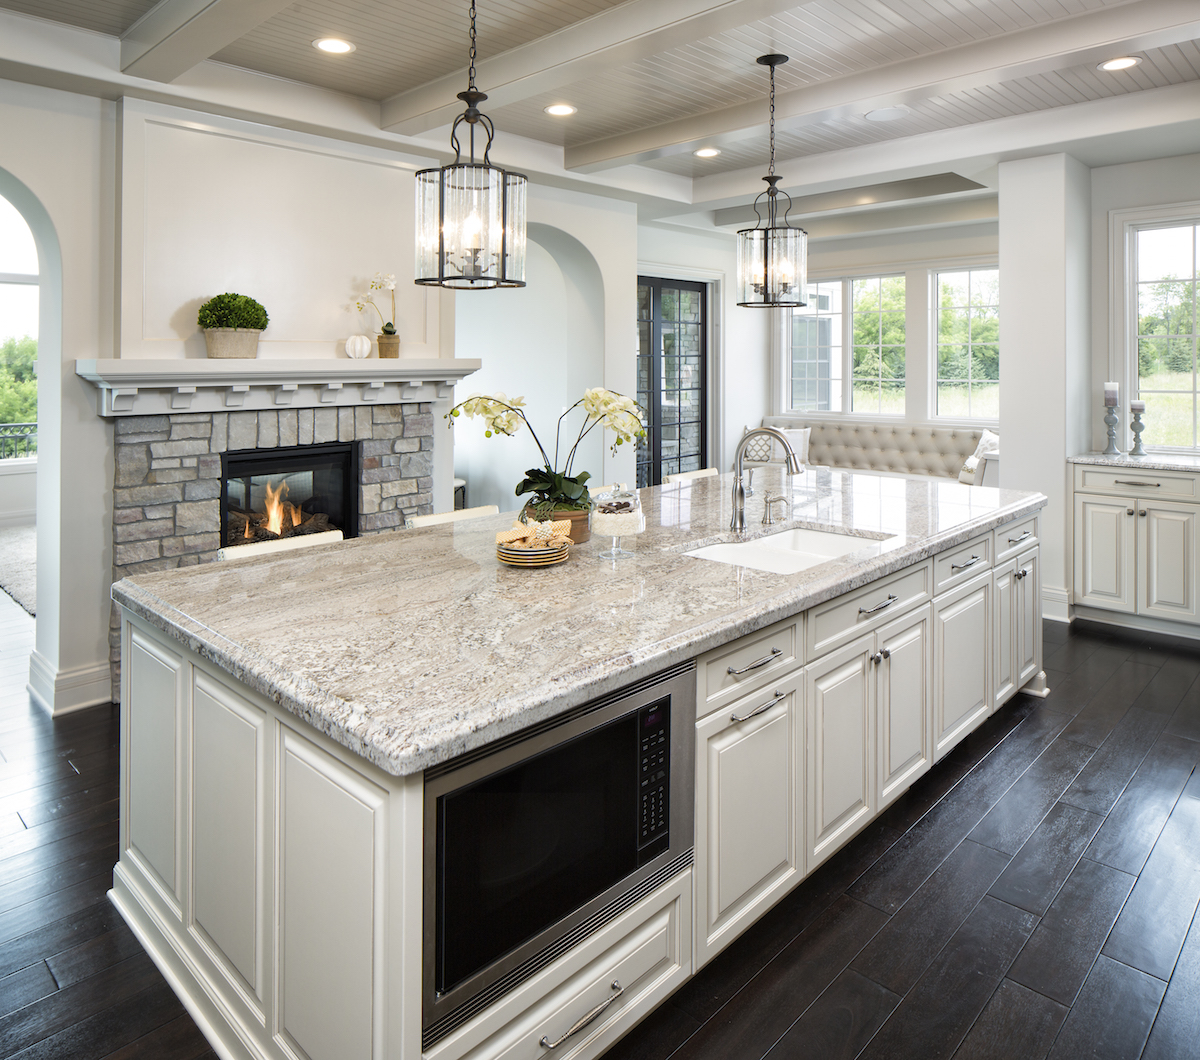 Granite princess white 100 granite princess white white White kitchen cabinets with granite countertops photos